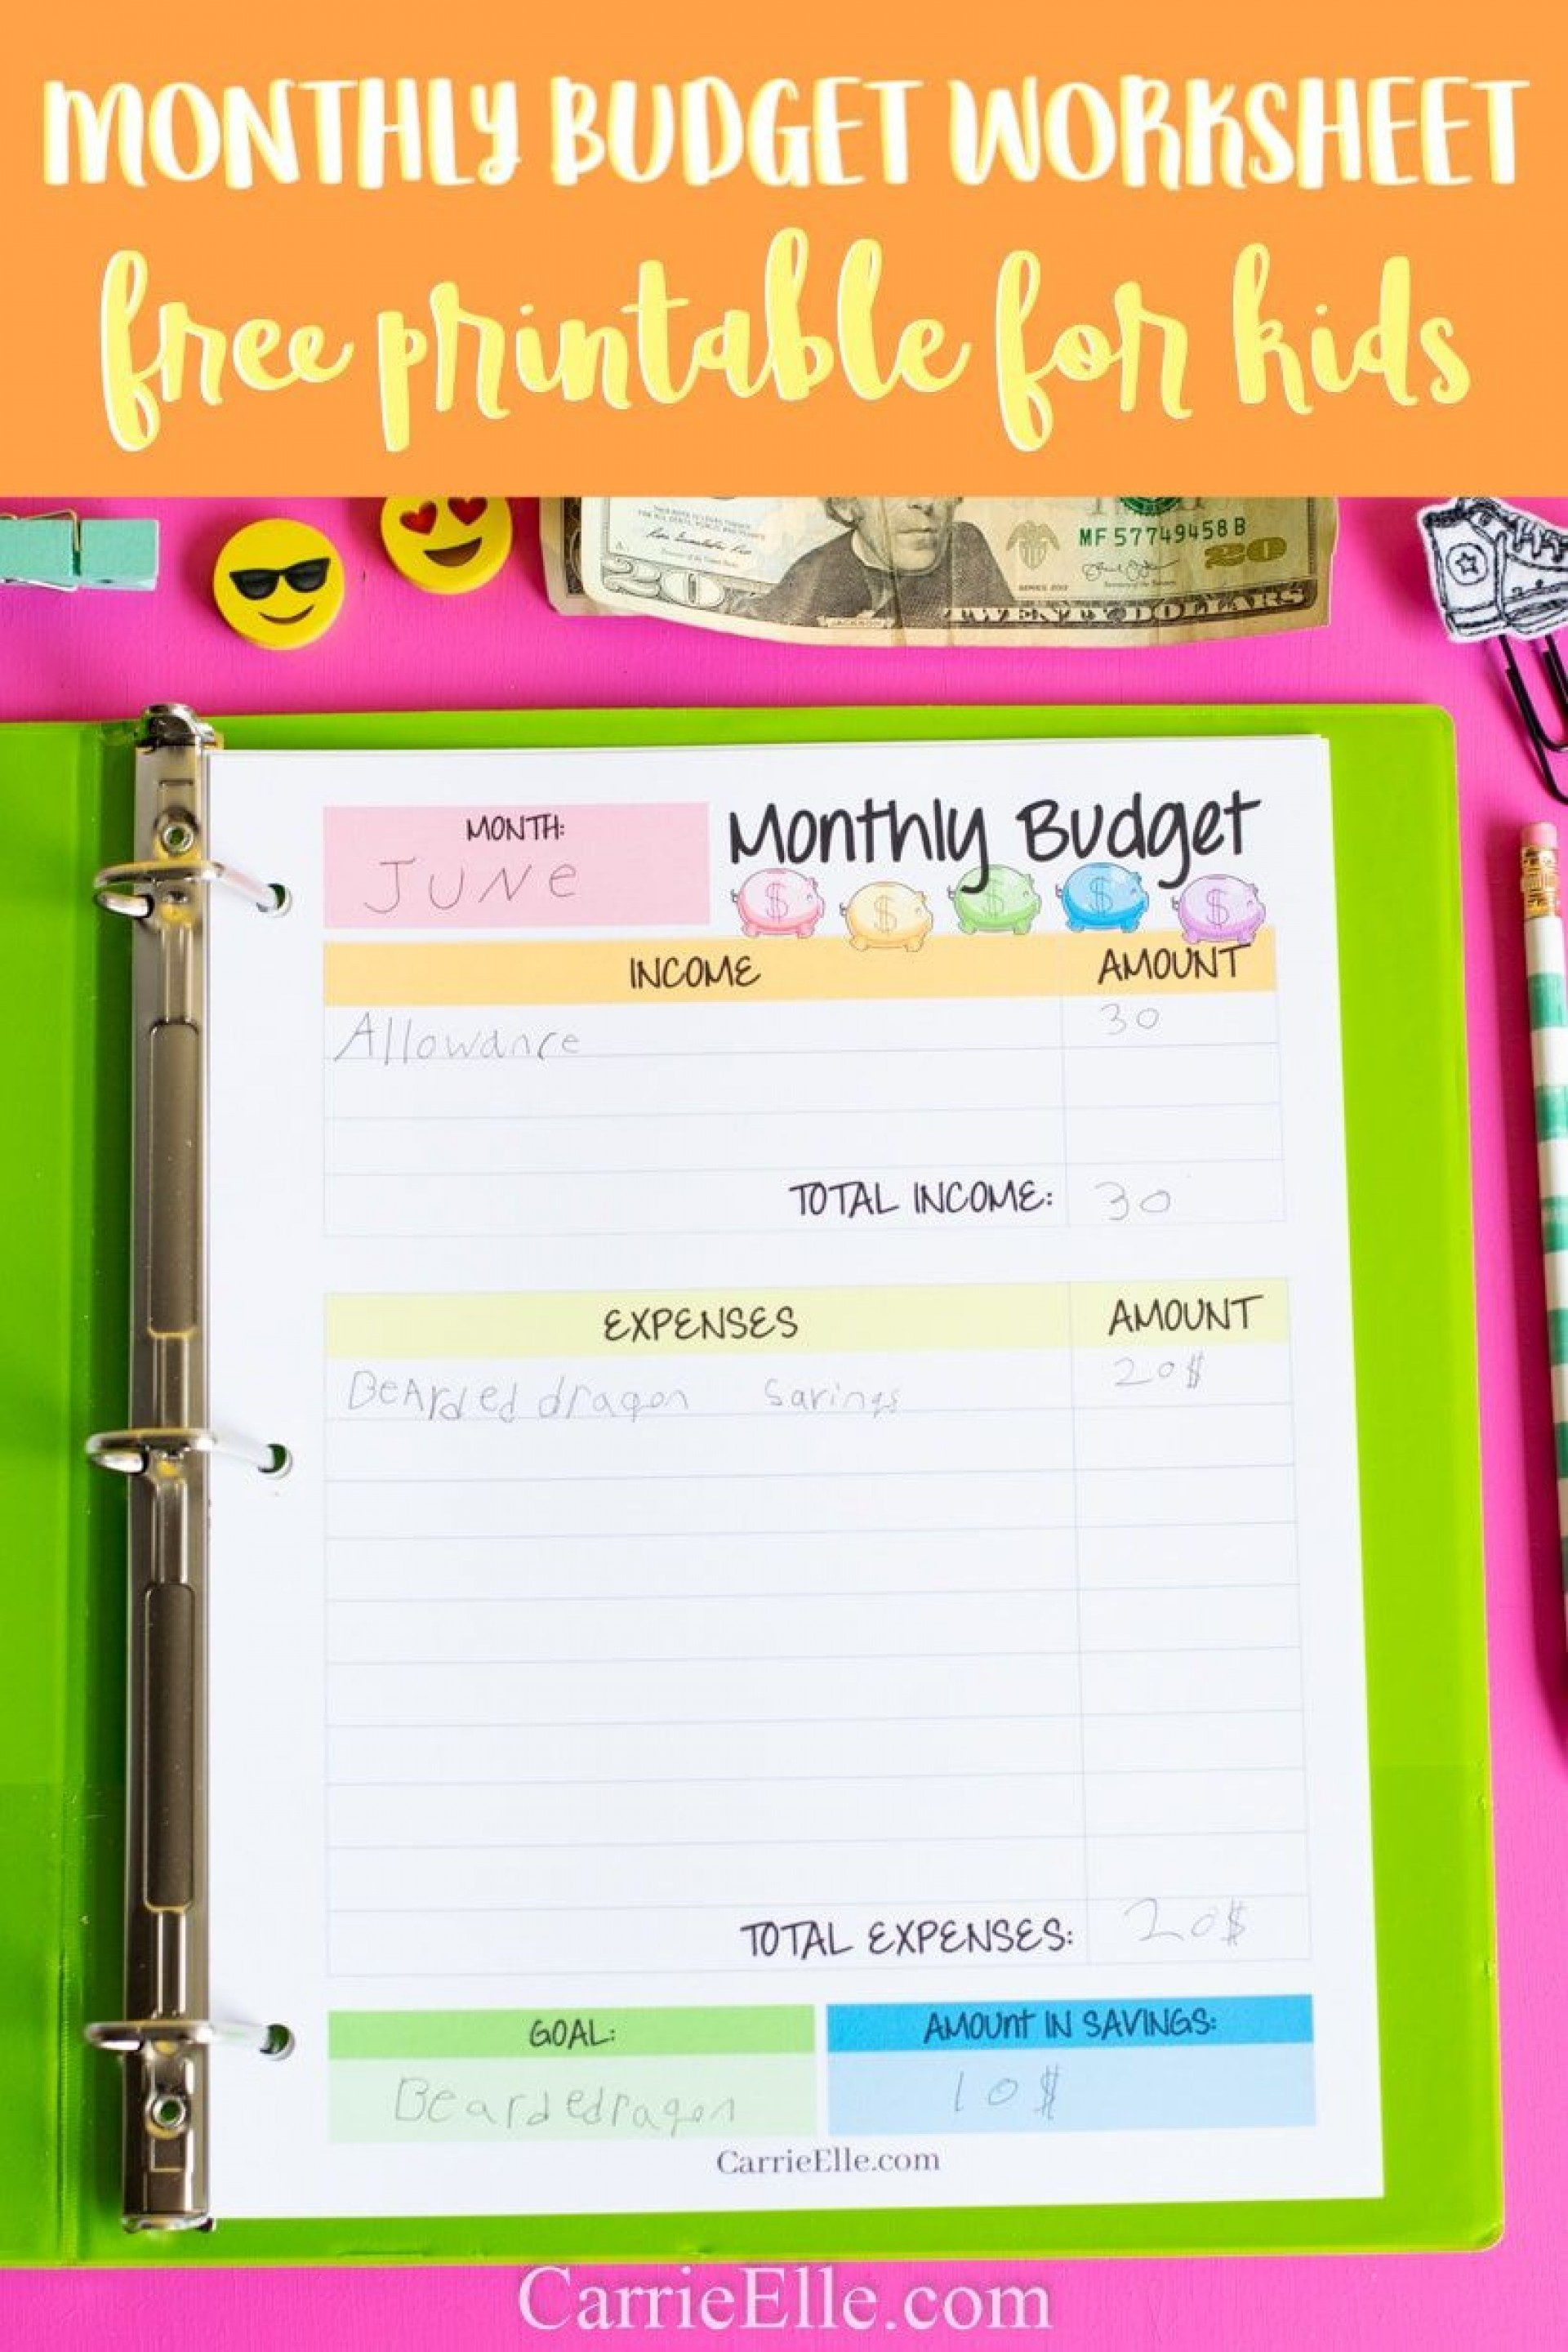 009 Excellent Free Monthly Budget Template Printable High Resolution  Simple Worksheet Household Planner Uk1920